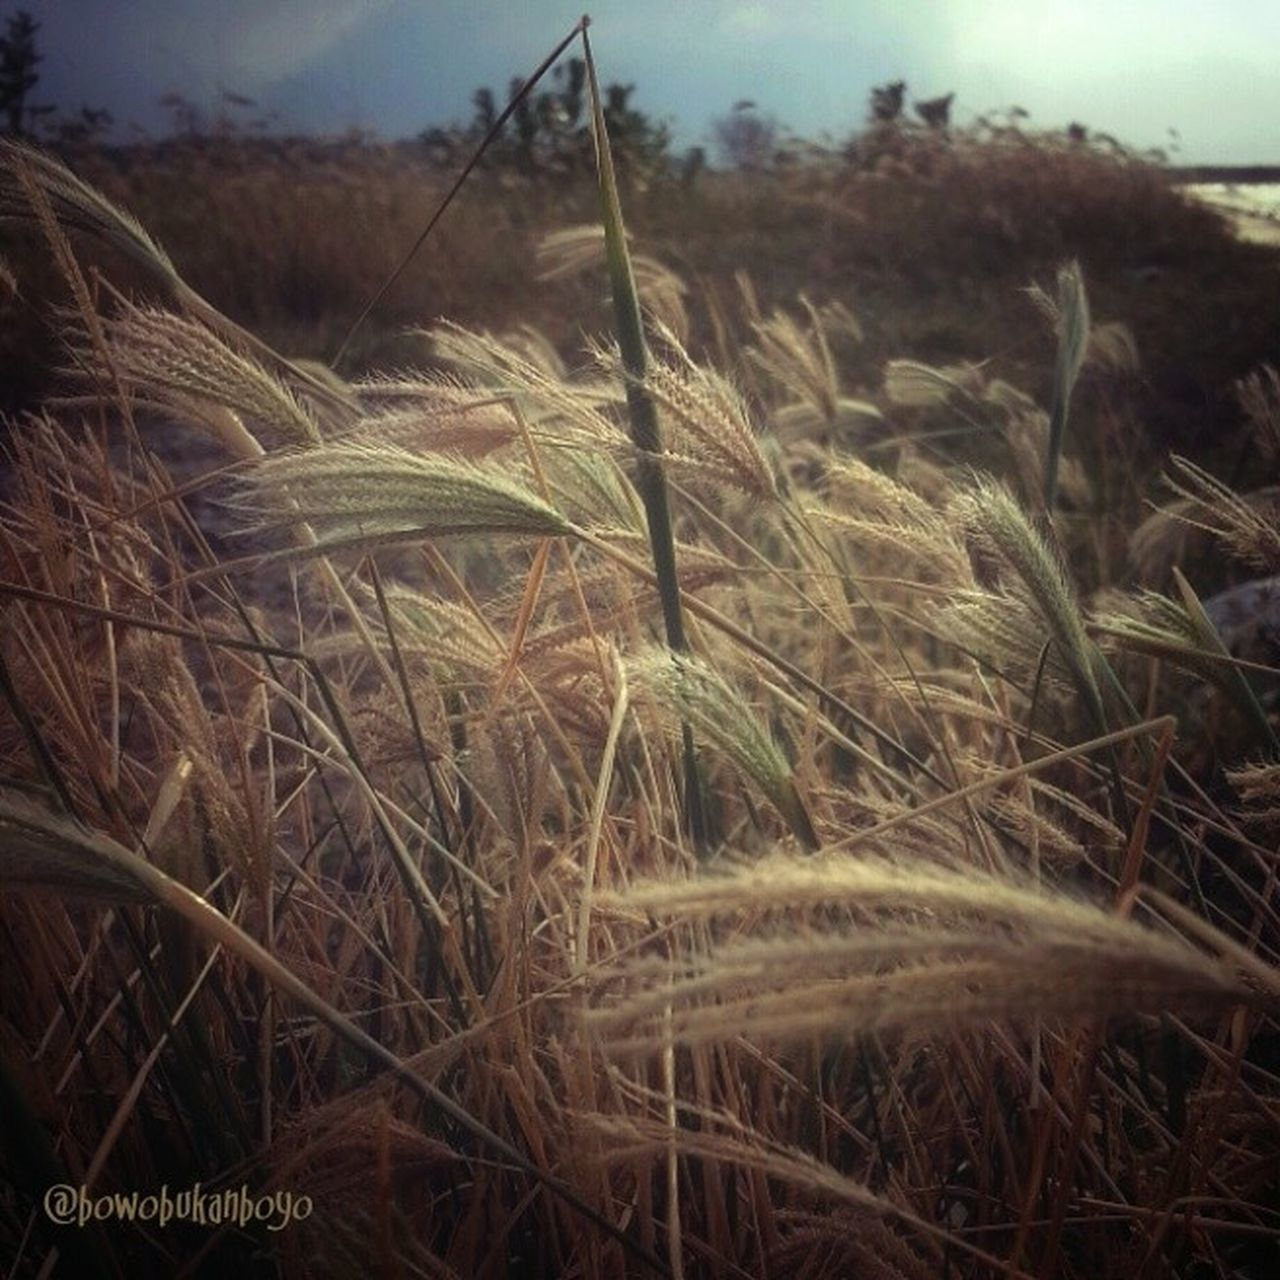 growth, nature, field, plant, no people, tranquility, outdoors, day, beauty in nature, wheat, agriculture, close-up, sky